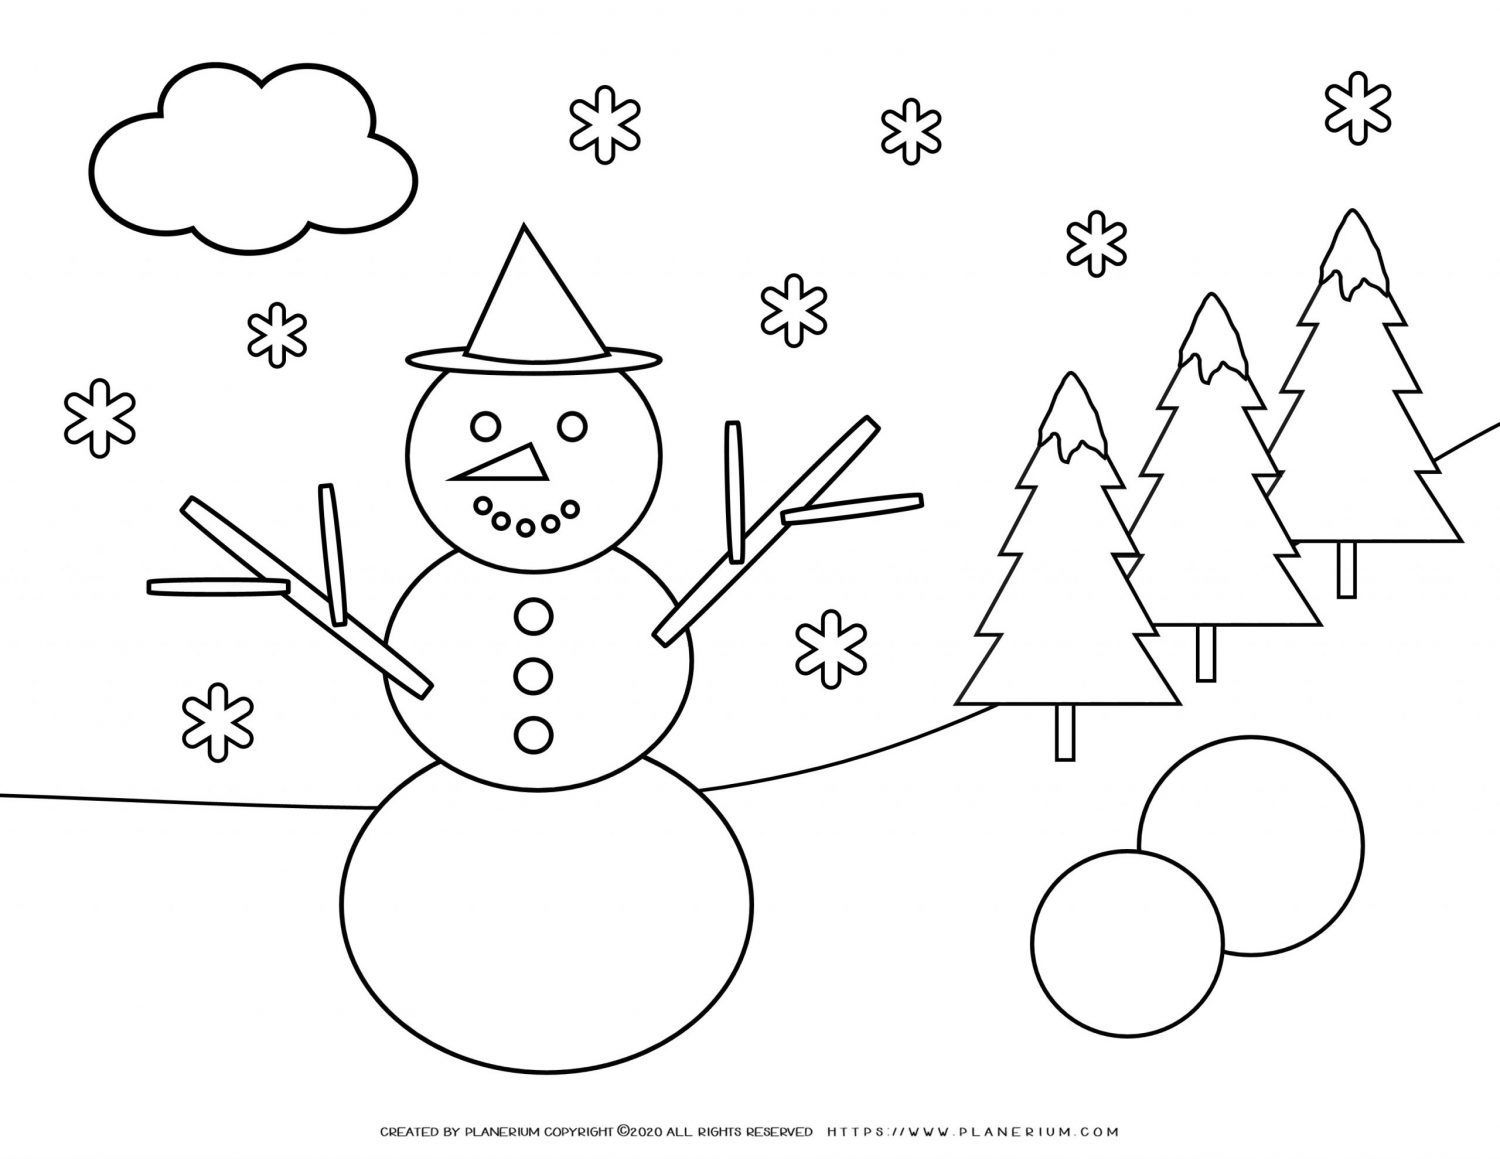 Winter Coloring Page - Smiling Snowman | Planerium